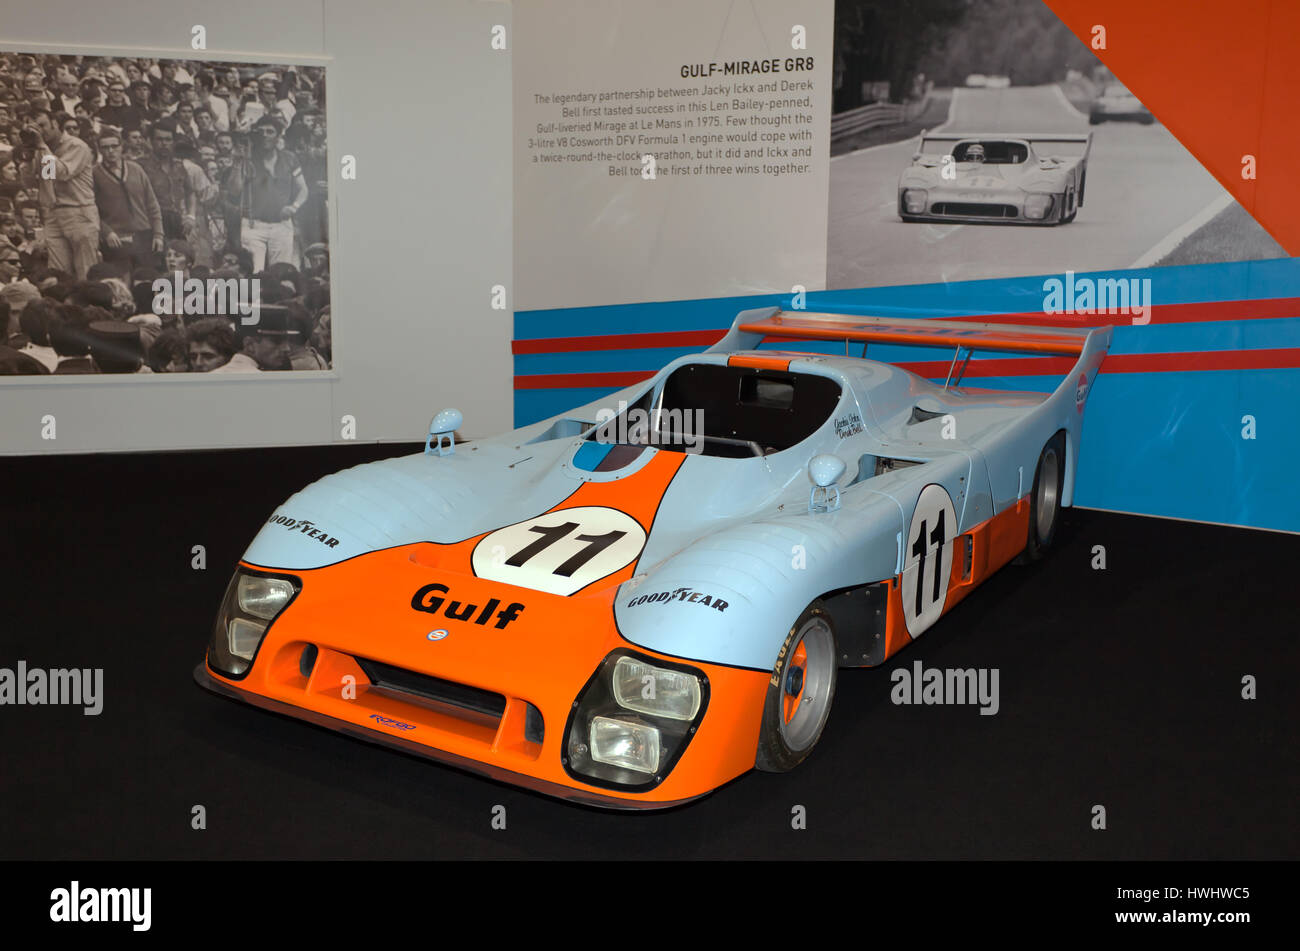 The Gulf-Mirage GR8 driven by Jacky Icks and Derek Bell, to victory in the 24hrs of Le Mans in 1975 - Stock Image